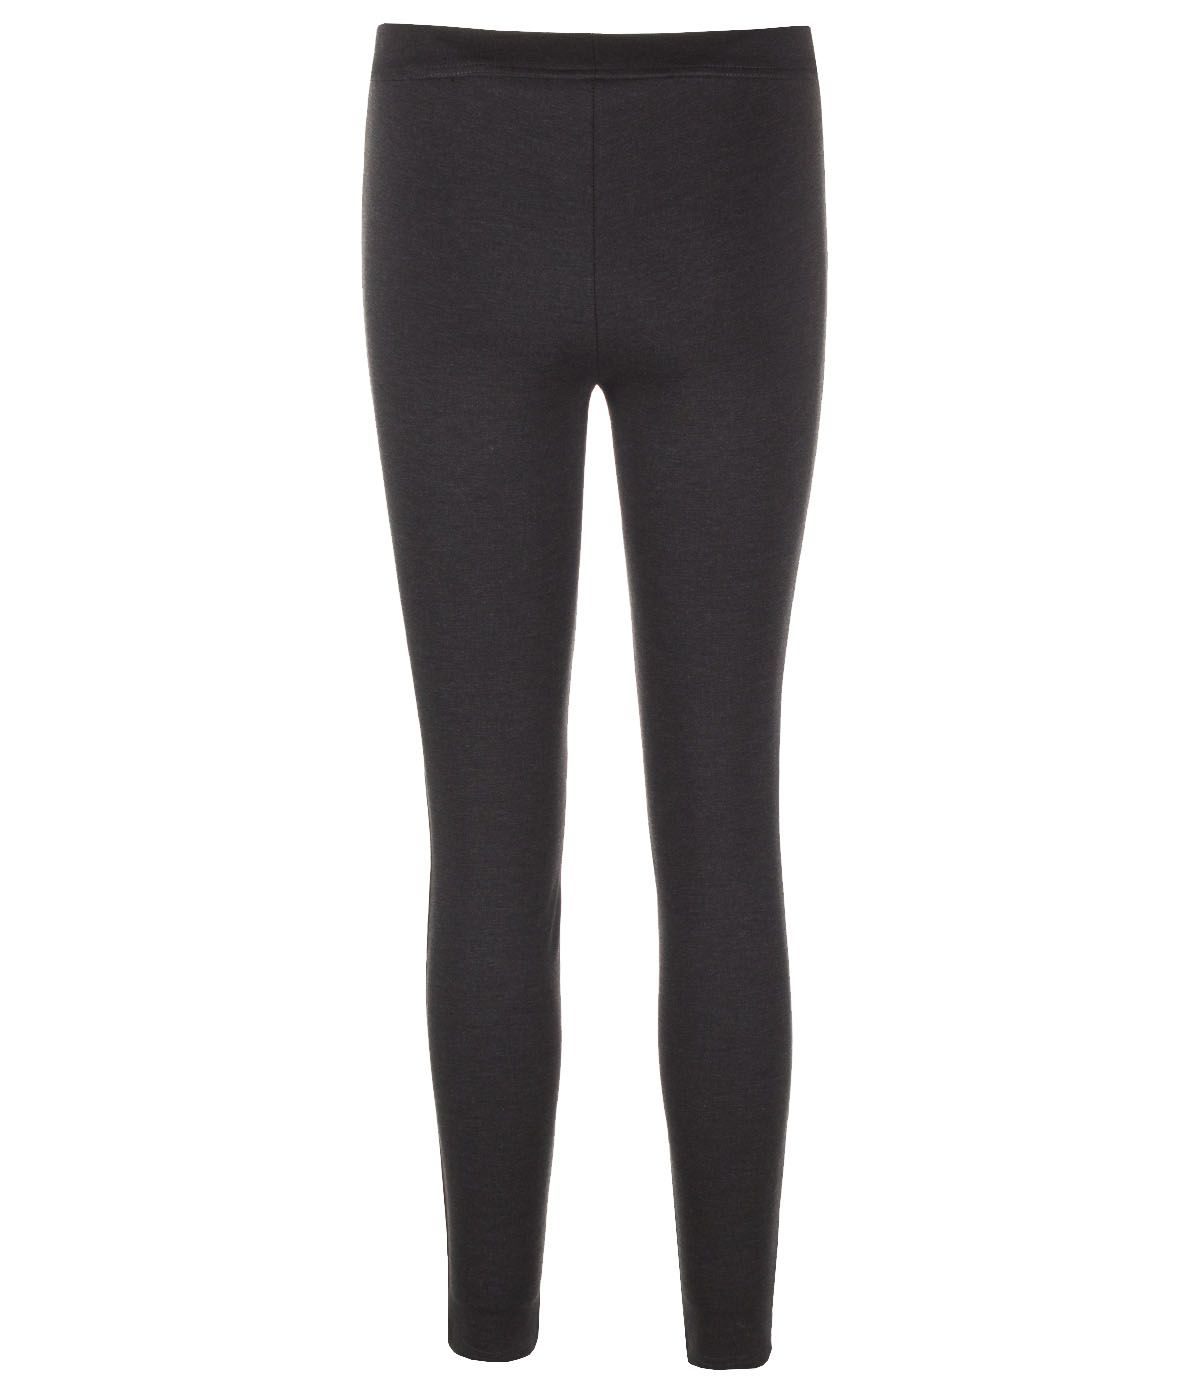 SLIM FIT BLACK LEGGINGS 1